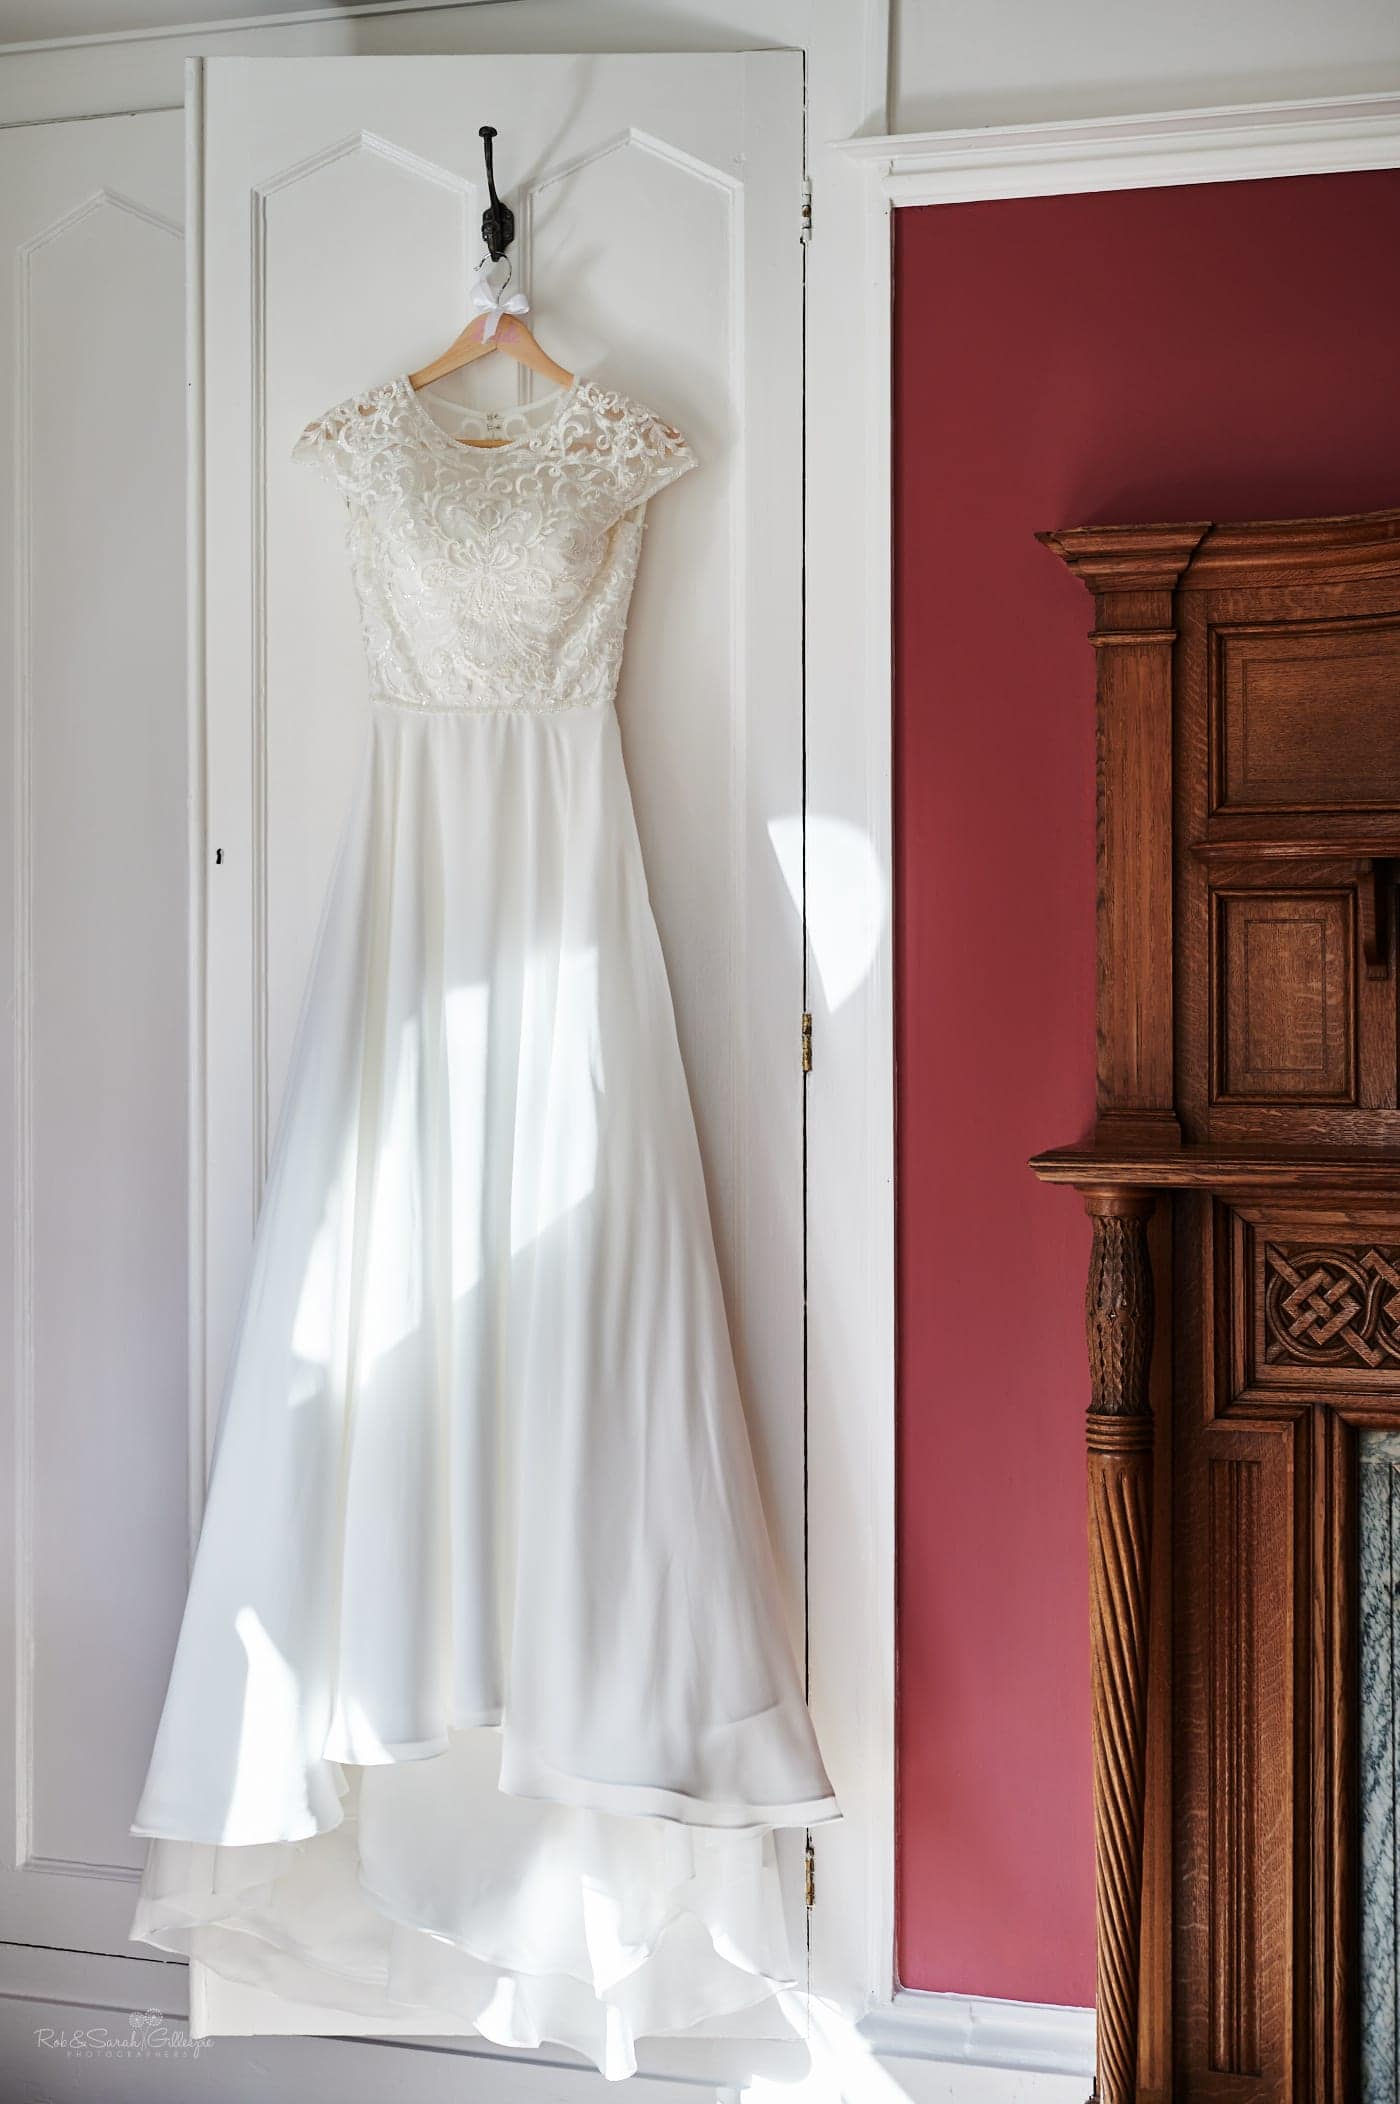 White wedding dress handing in Strawberry Thief room at Pendrell Hall